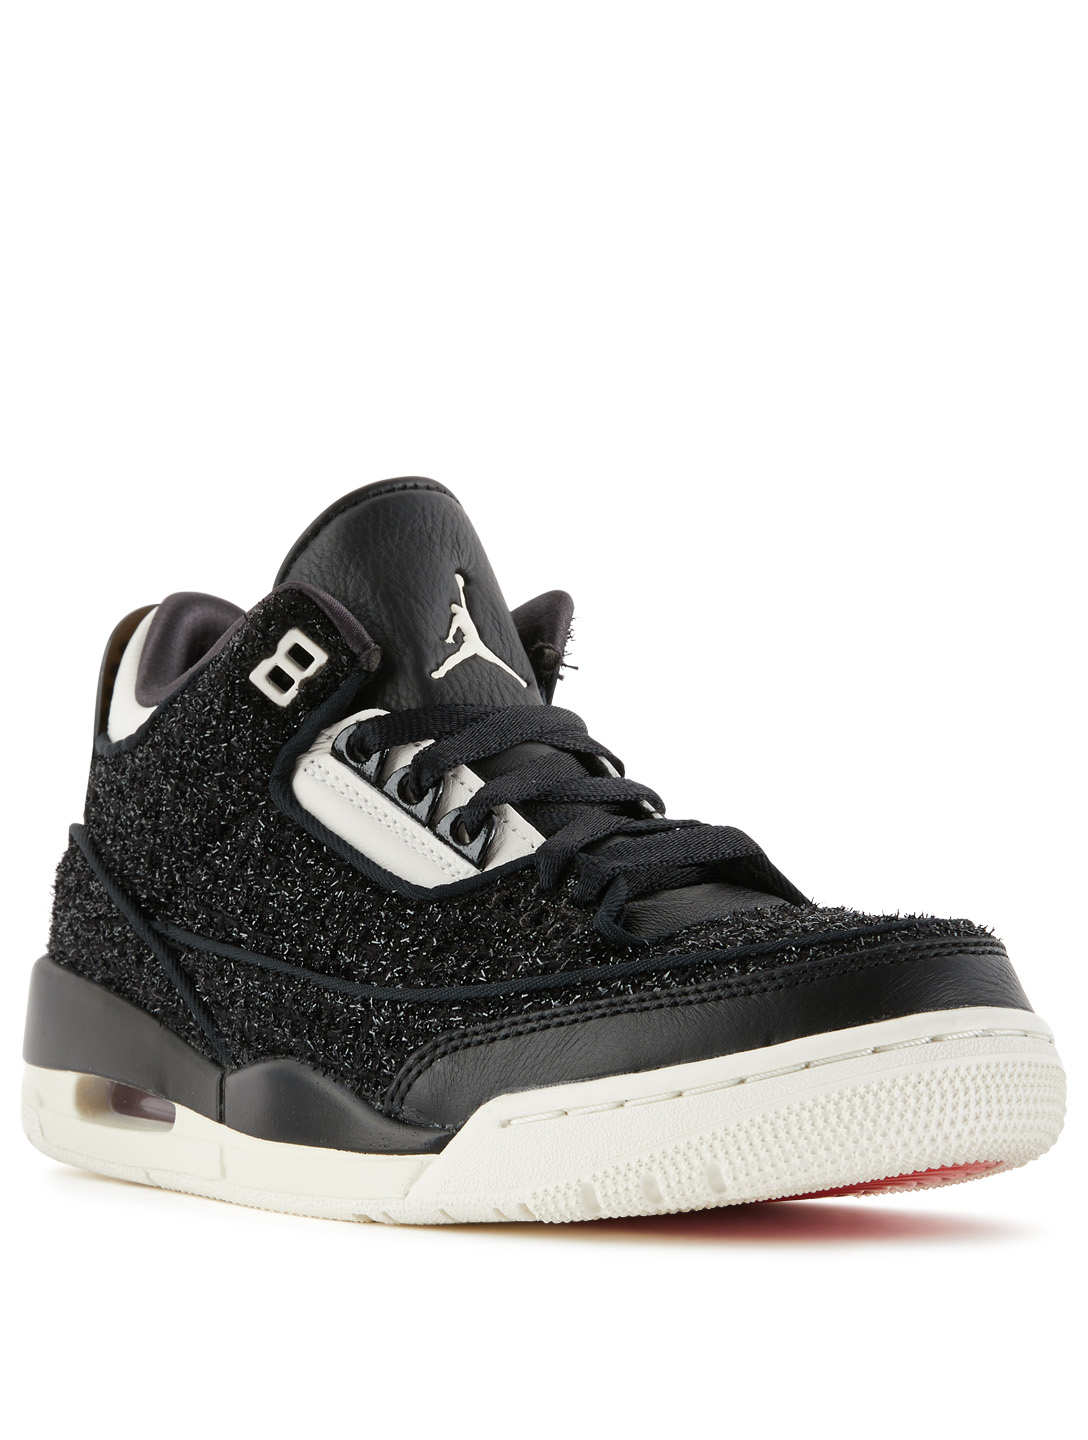 448dd80f513 ... NIKE Vogue x Air Jordan 3 AWOK Sneakers Women's Black ...